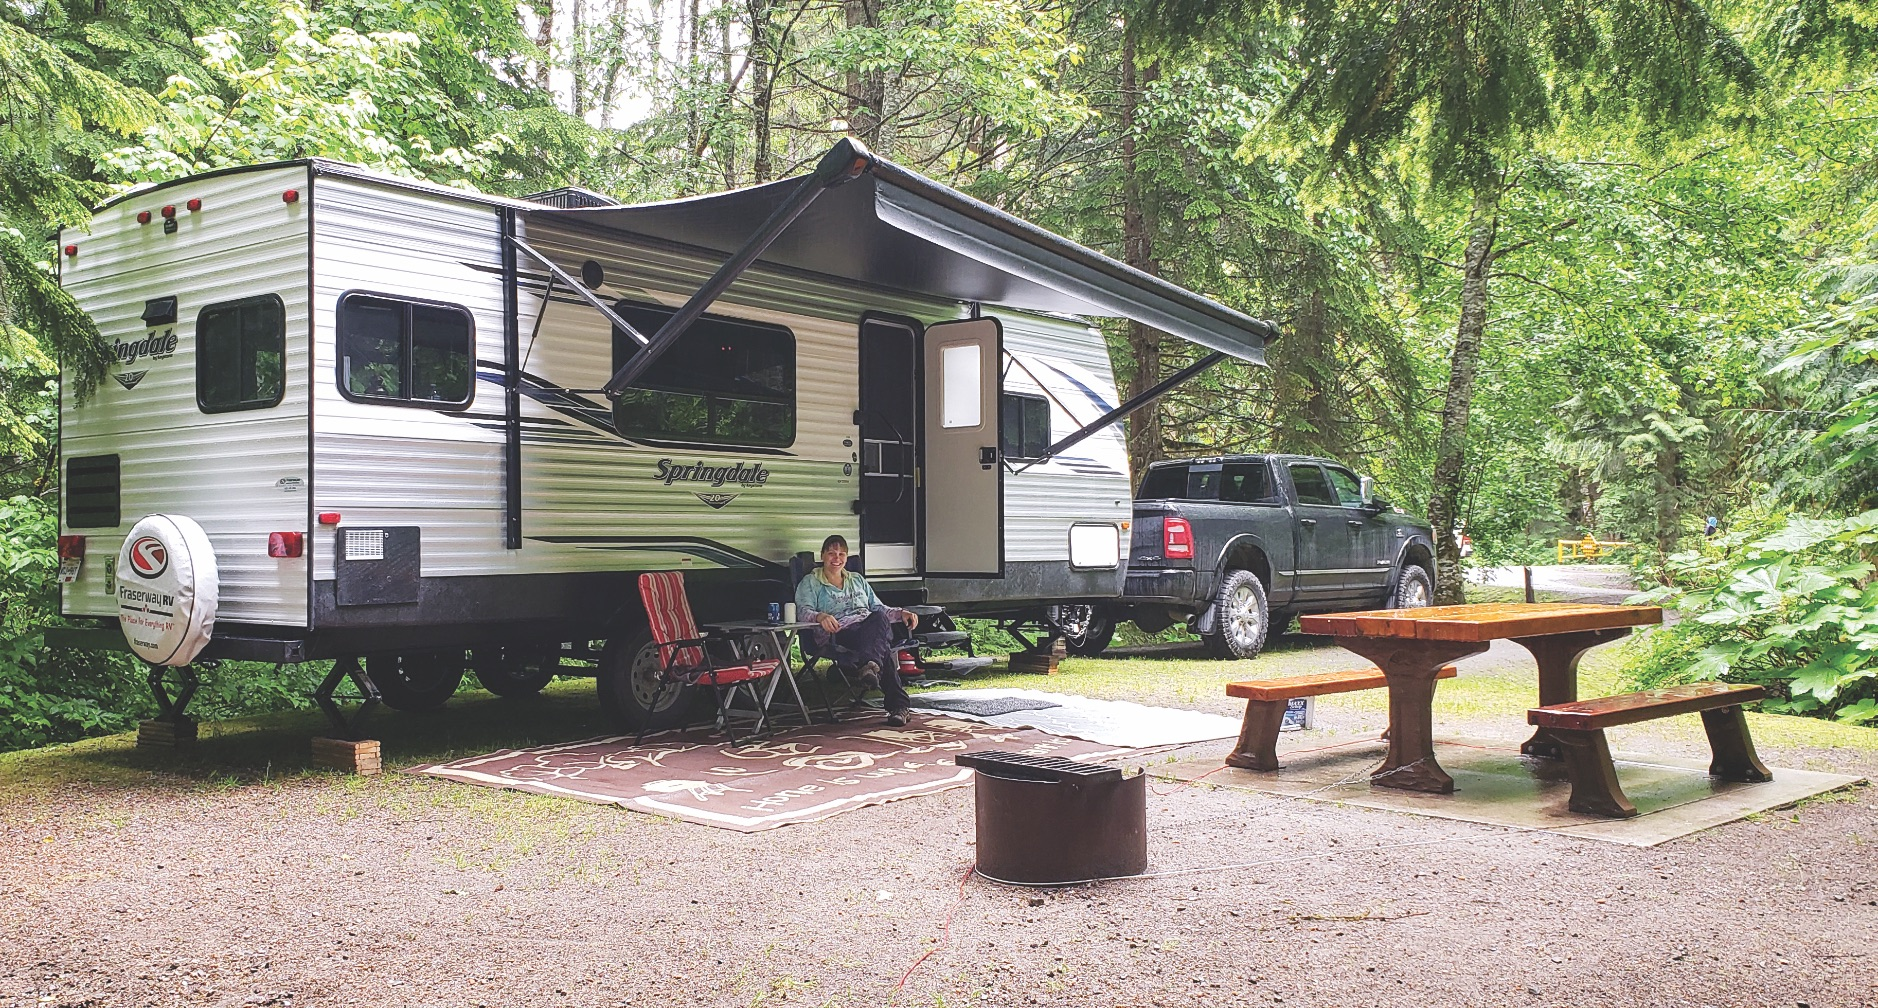 Women RVer at a campground